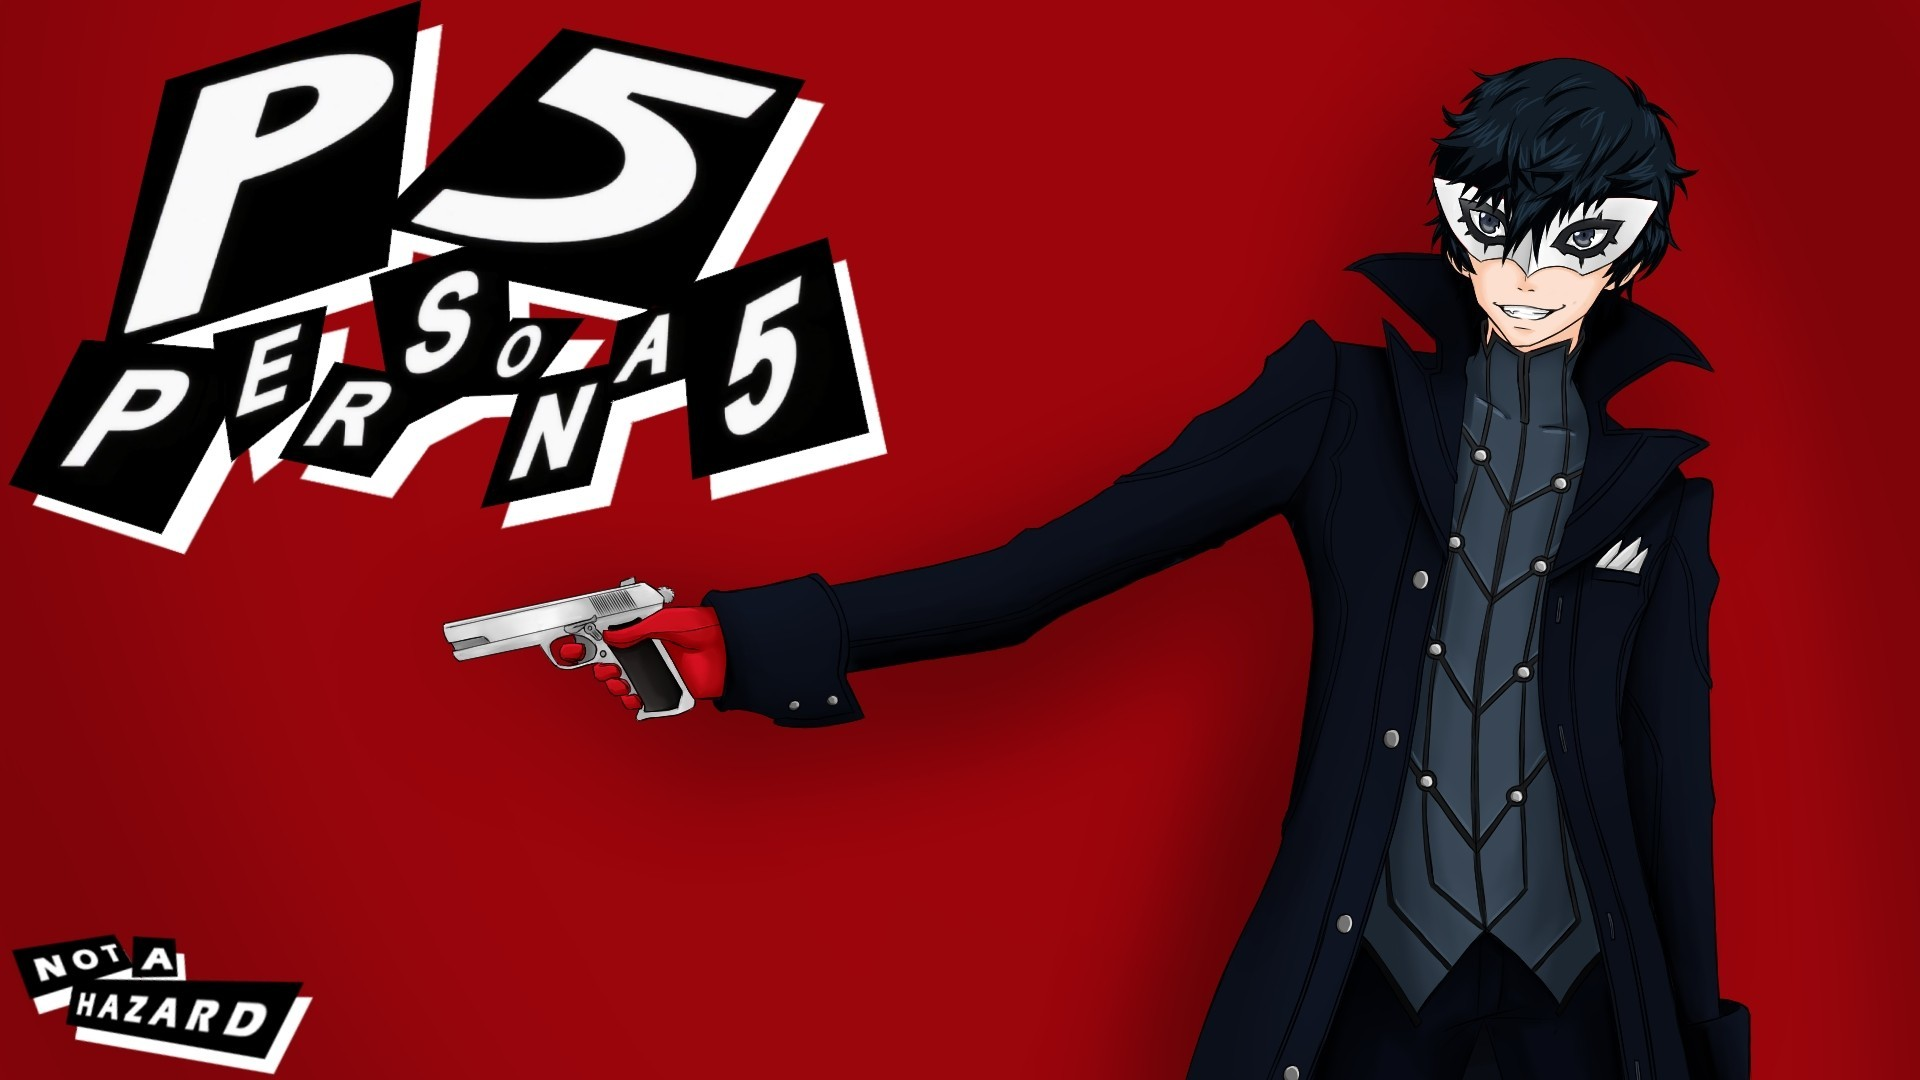 Persona 5 wallpapers best hd